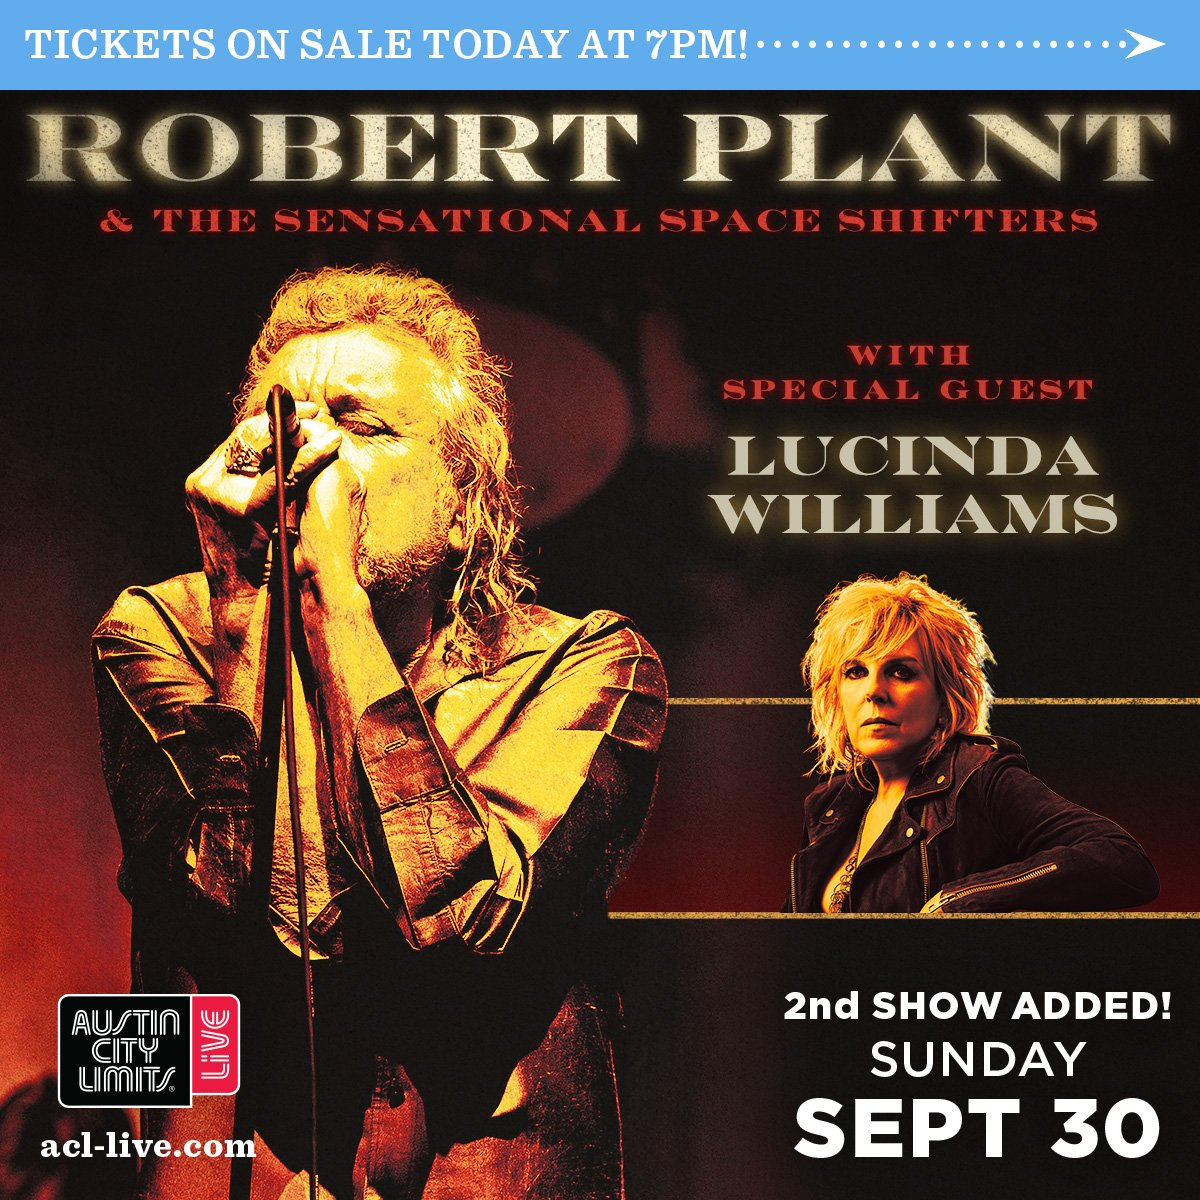 JUST ANNOUNCED 2ND NIGHT: @RobertPlant & the Sensational Space Shifters with special guest Lucinda Williams (@HappyWoman9) on 9/30! Tickets on sale TODAY at 7PM here: acl.live/2JAIz43